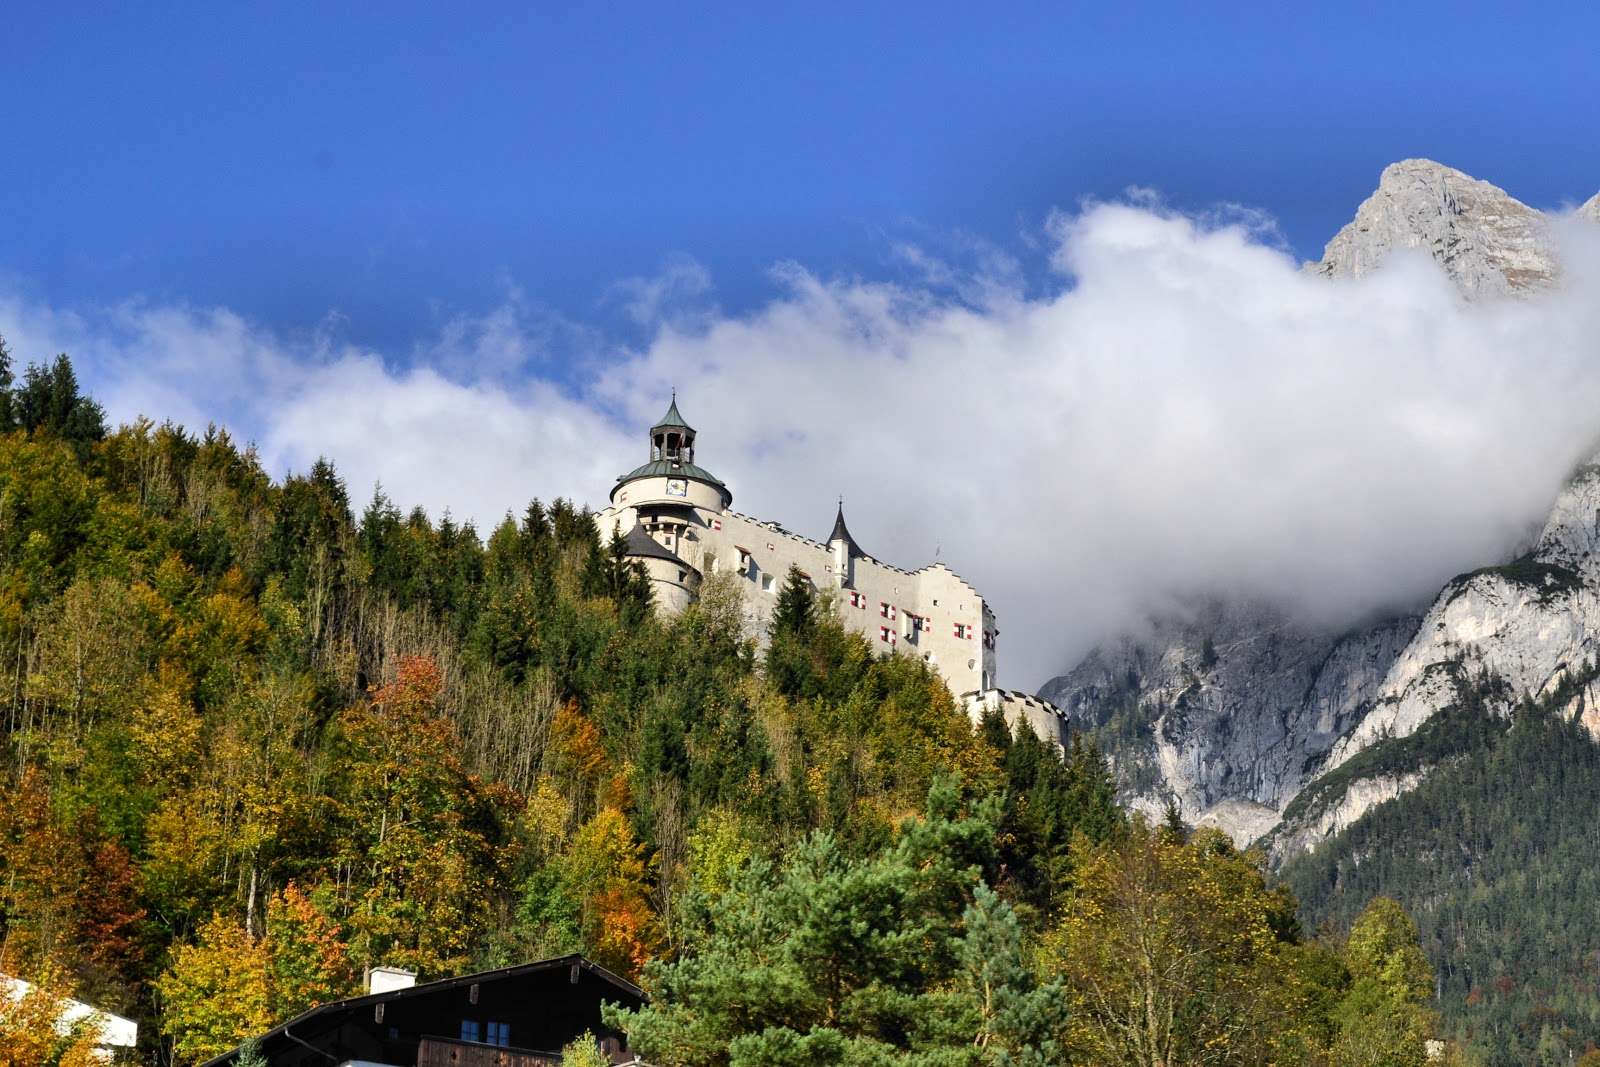 Close-up view of Hohenwerfen, the castle seen in the background of the Gschwandtanger Meadow.